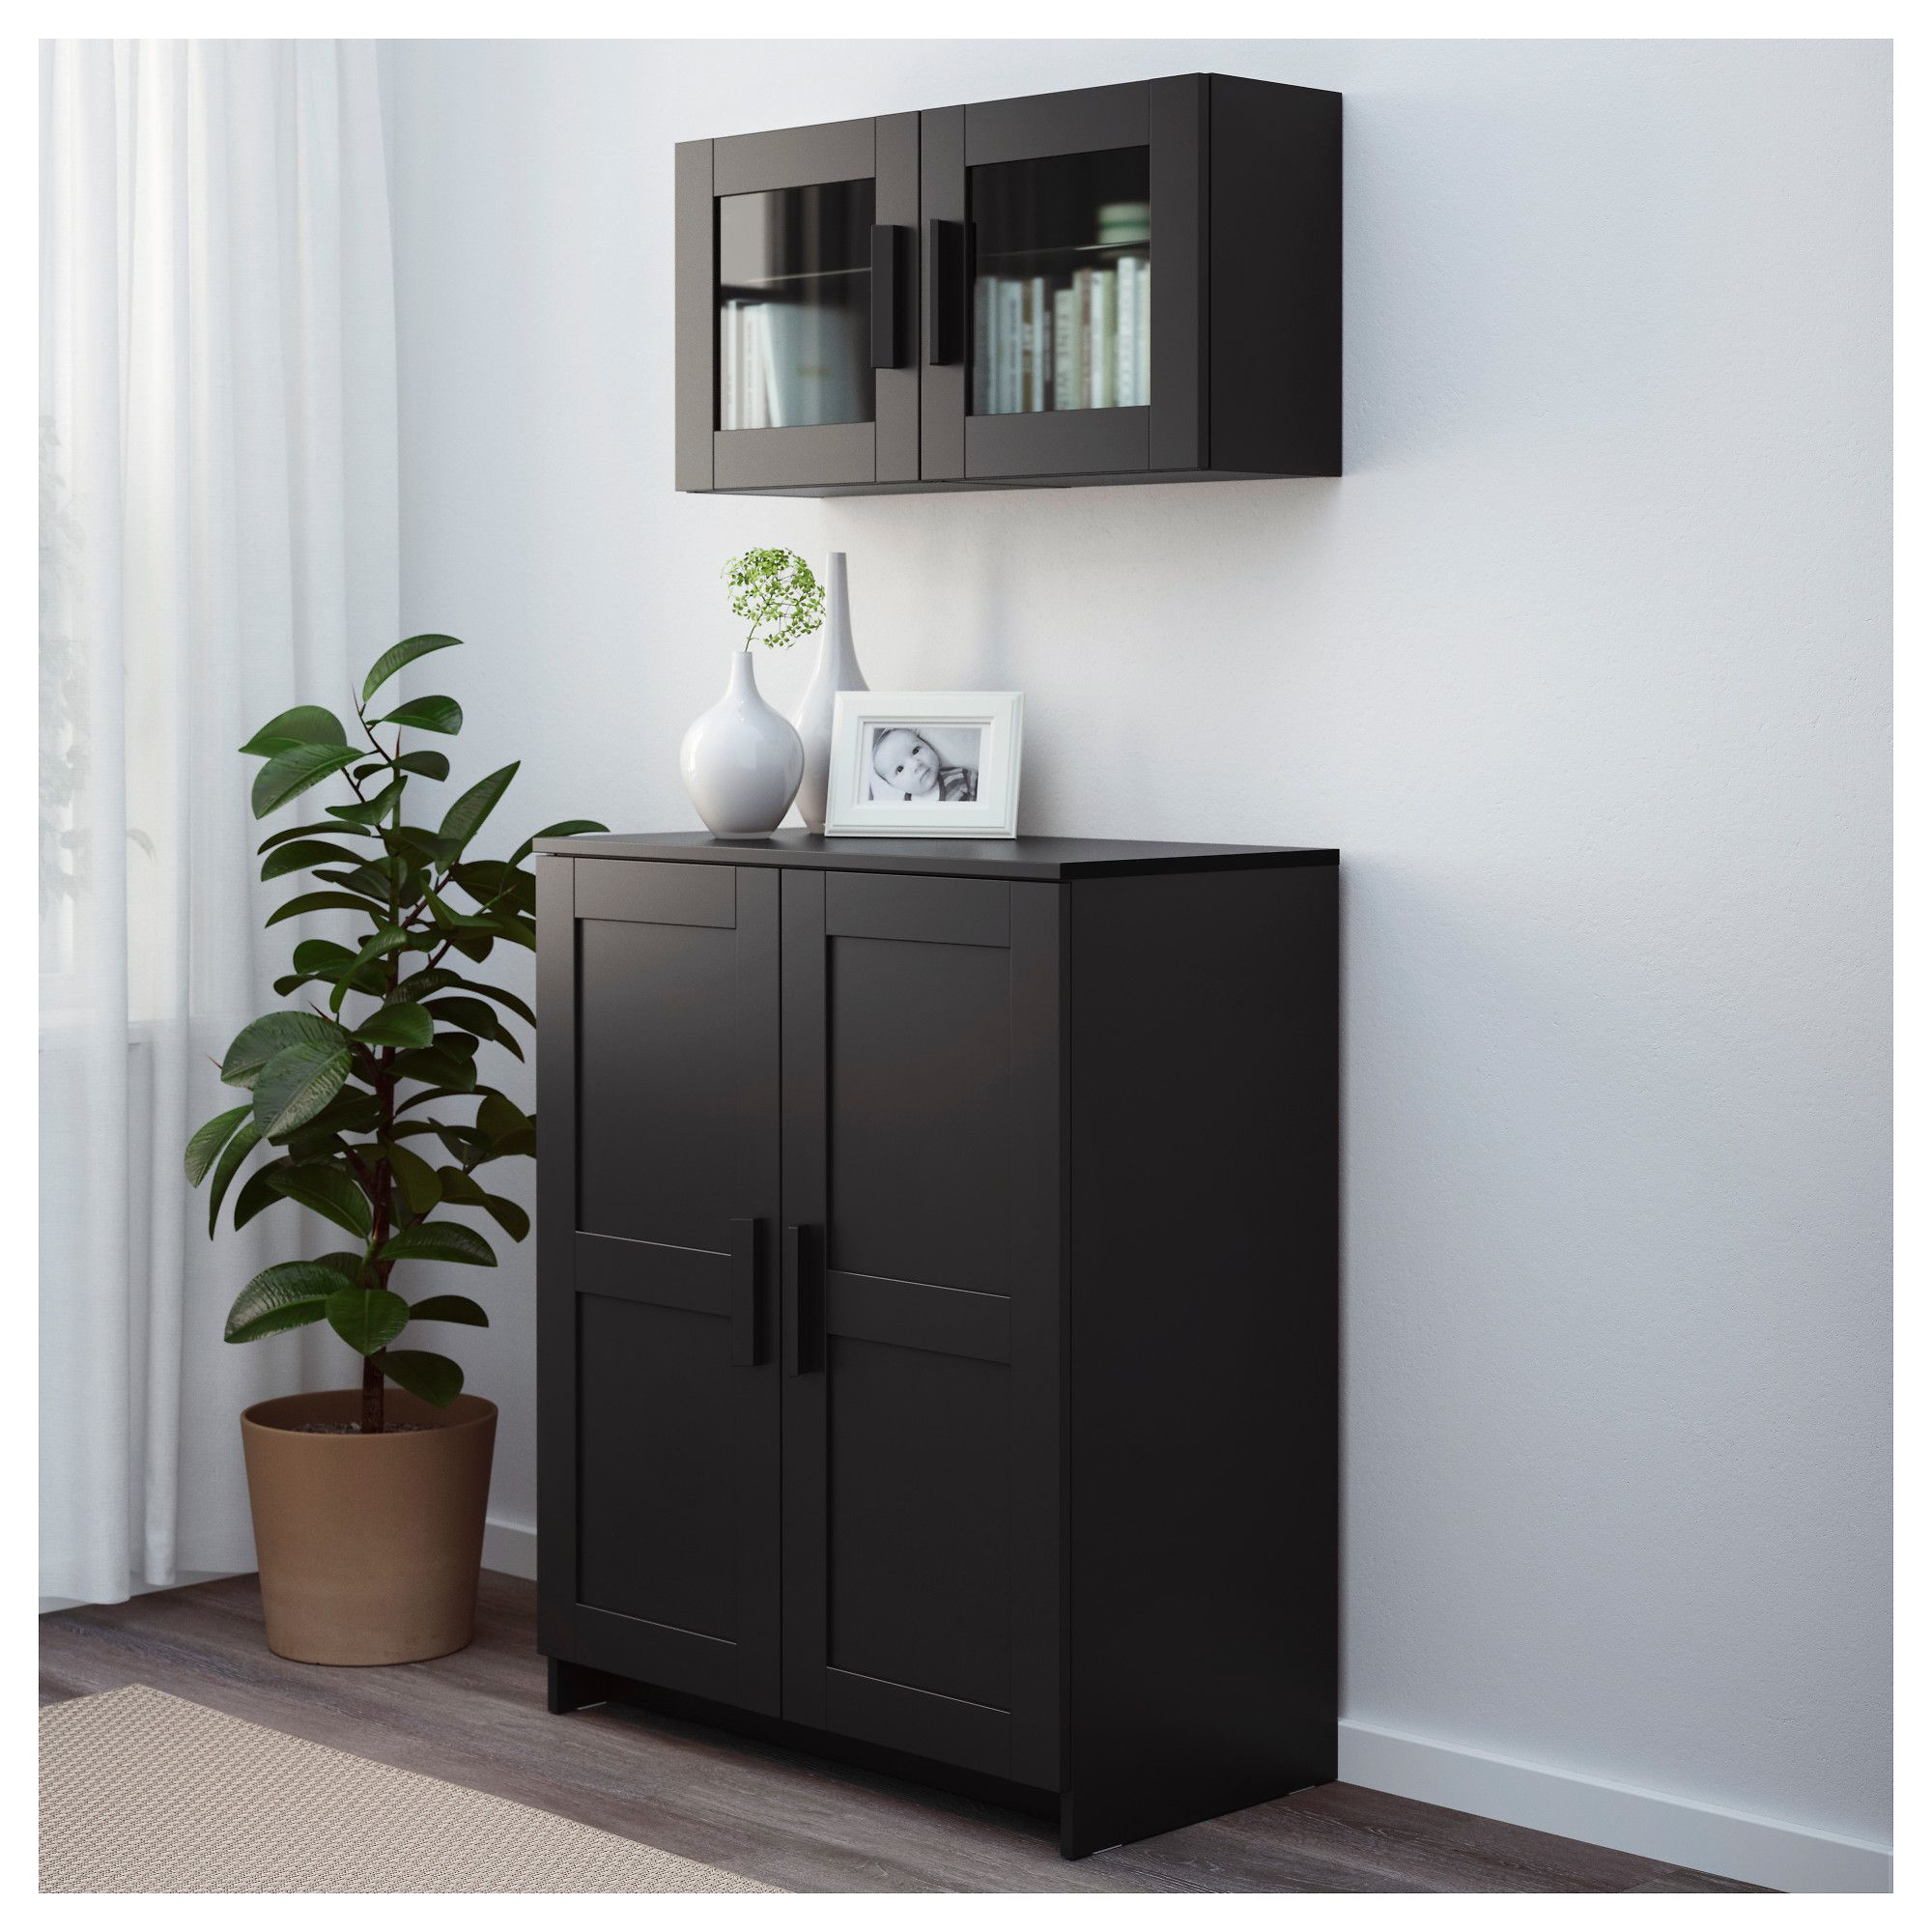 Best Ikea Brimnes Cabinet With Doors Black Cabinet Doors 640 x 480